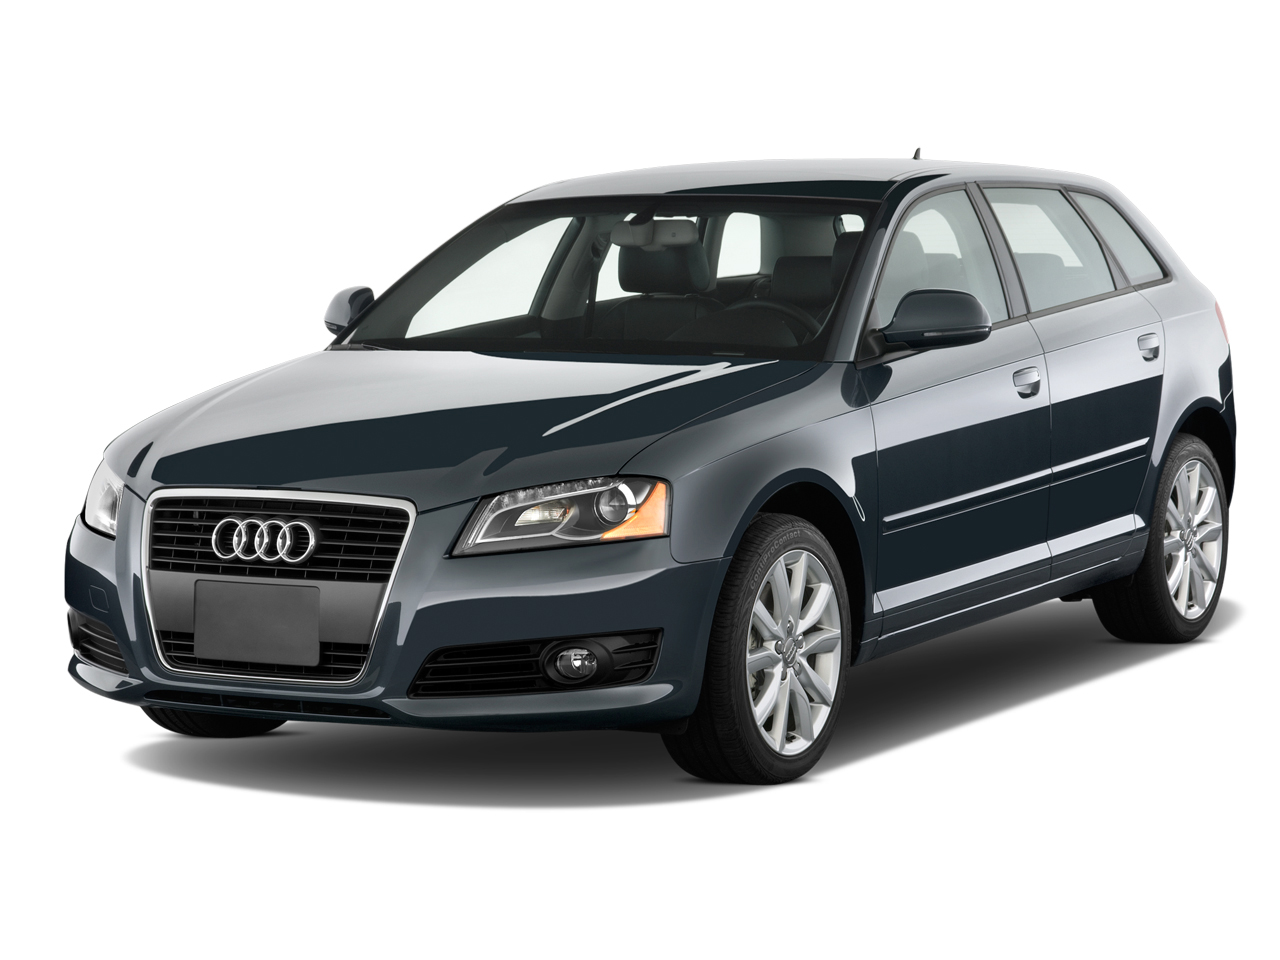 2012 Audi A3 Review Ratings Specs Prices And Photos